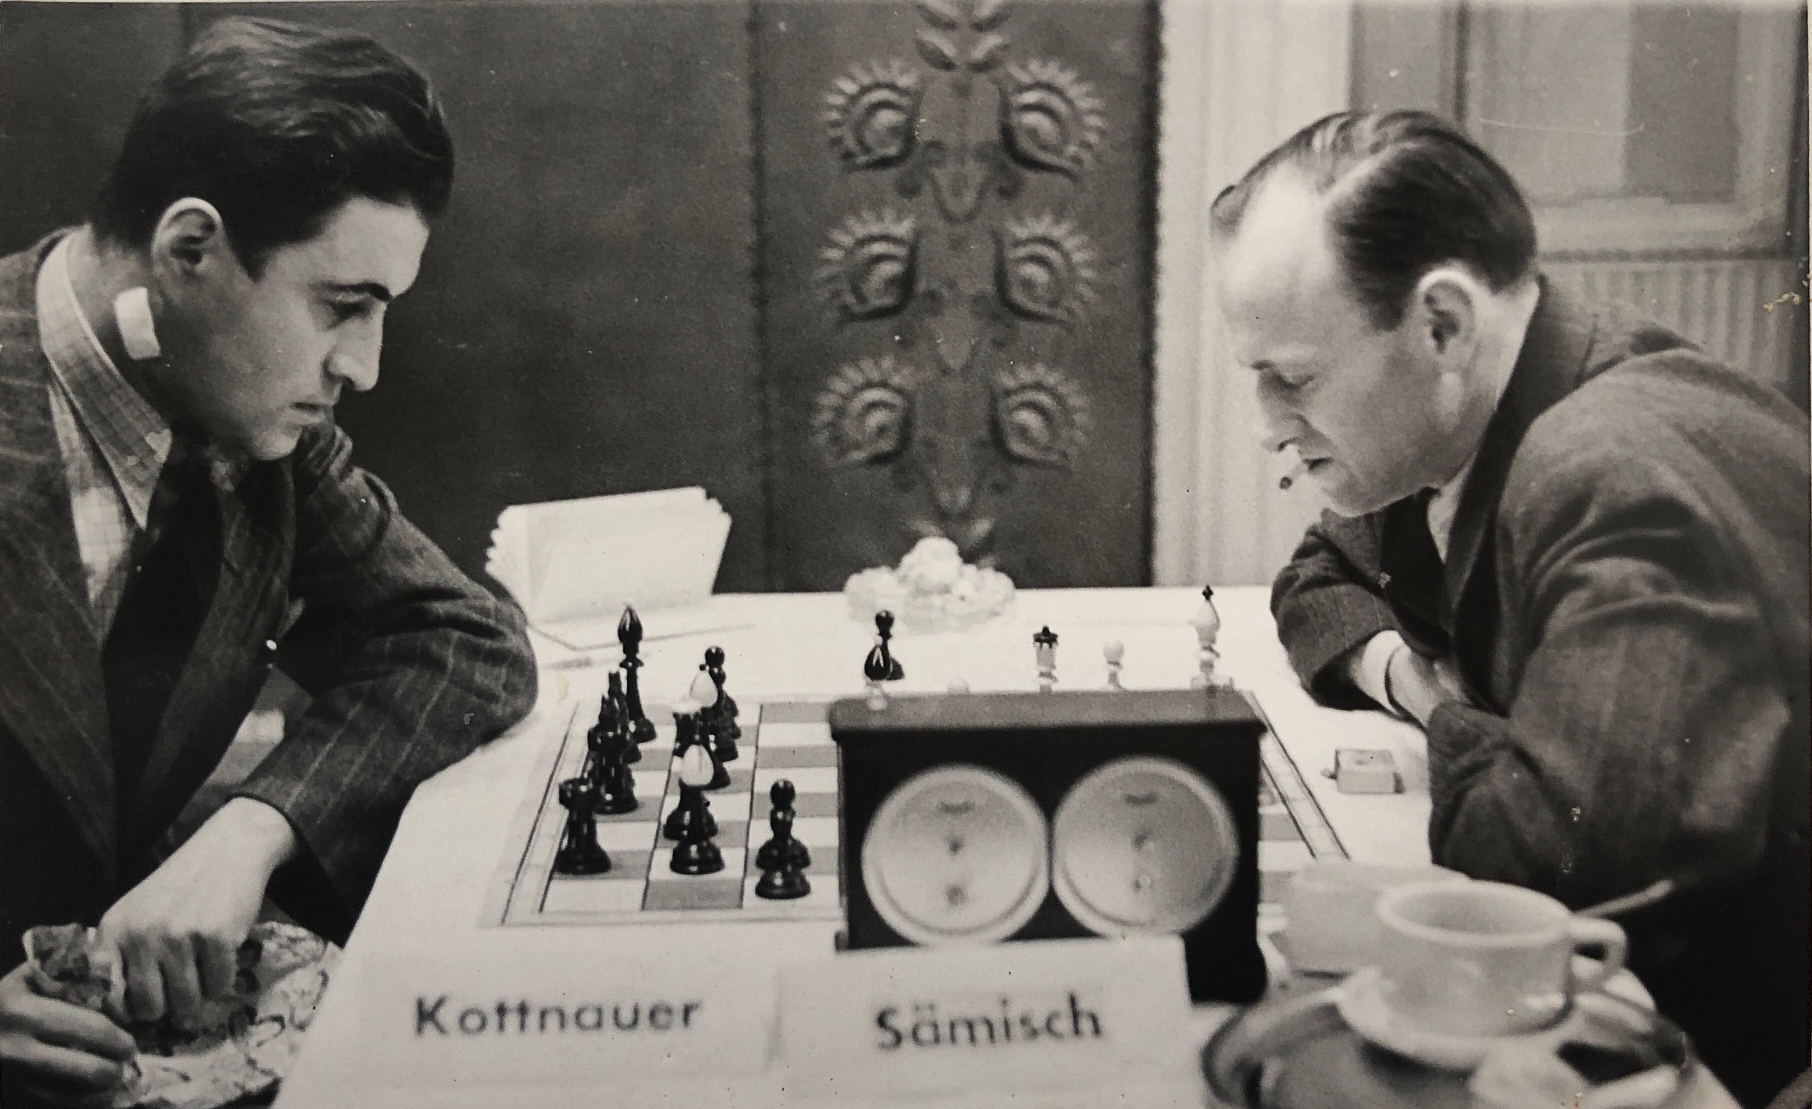 Čeněk Kottnauer plays Friedrich Sämisch during the Duras Memorial in Prague. December 7th 1942, The game was a Slav drawn after 42 moves